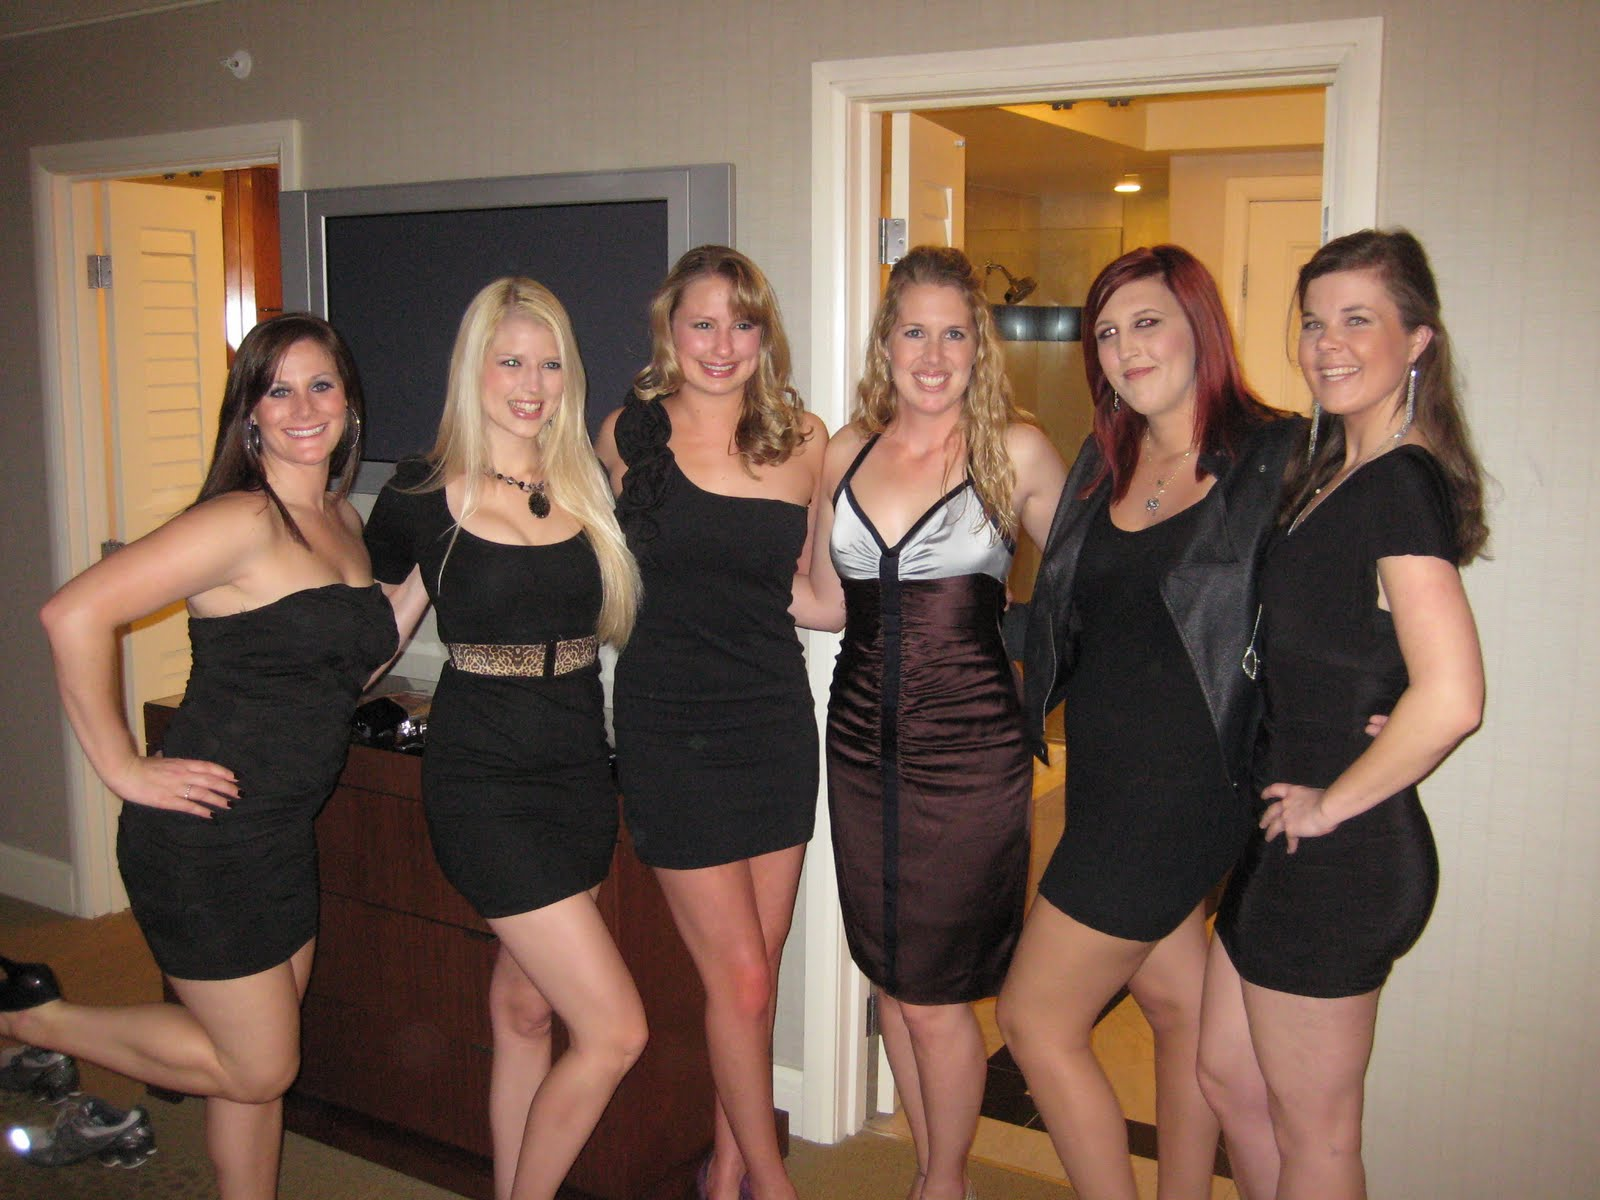 meeting girls at parties vegas